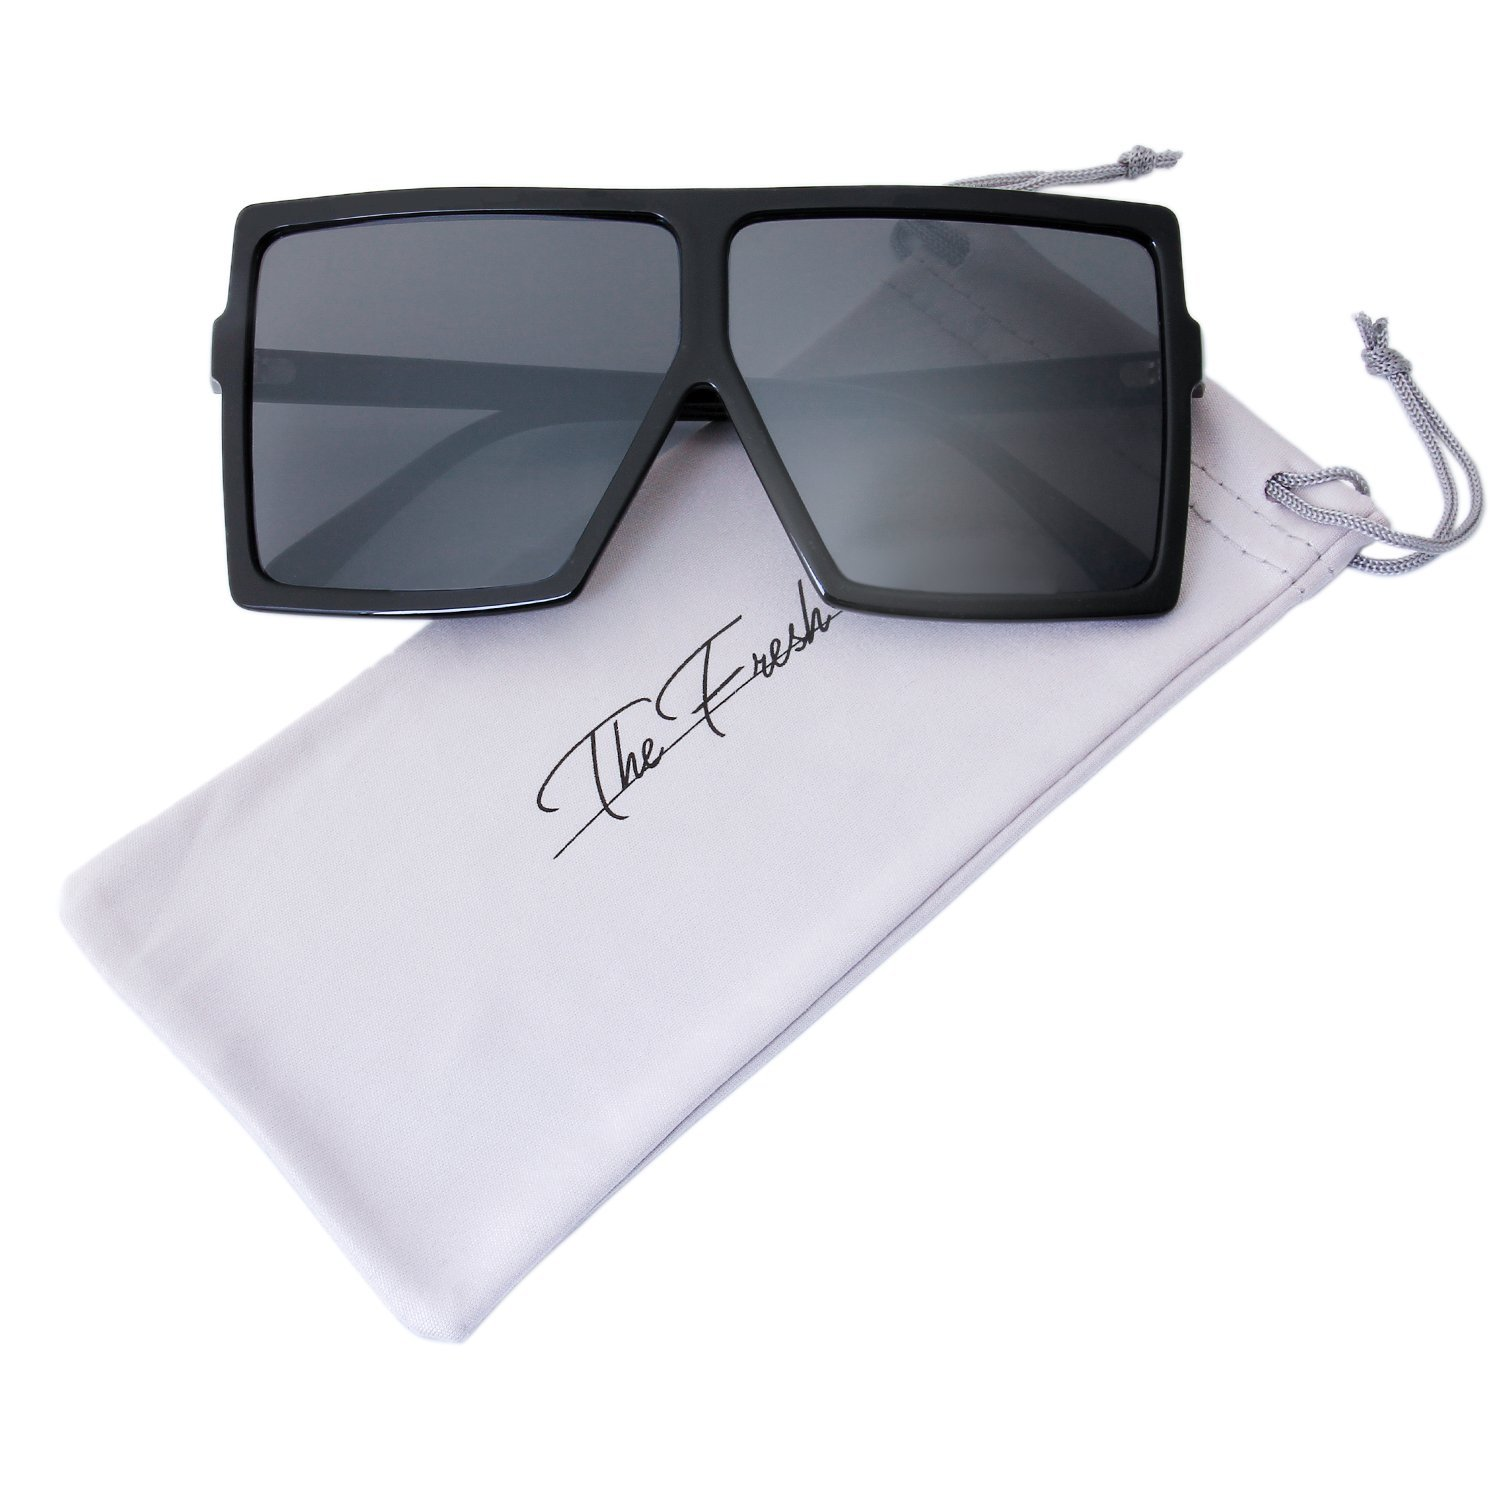 The Fresh Large Oversized Fashion Square Flat Top Sunglasses with Gift Box (1-Black, Grey)